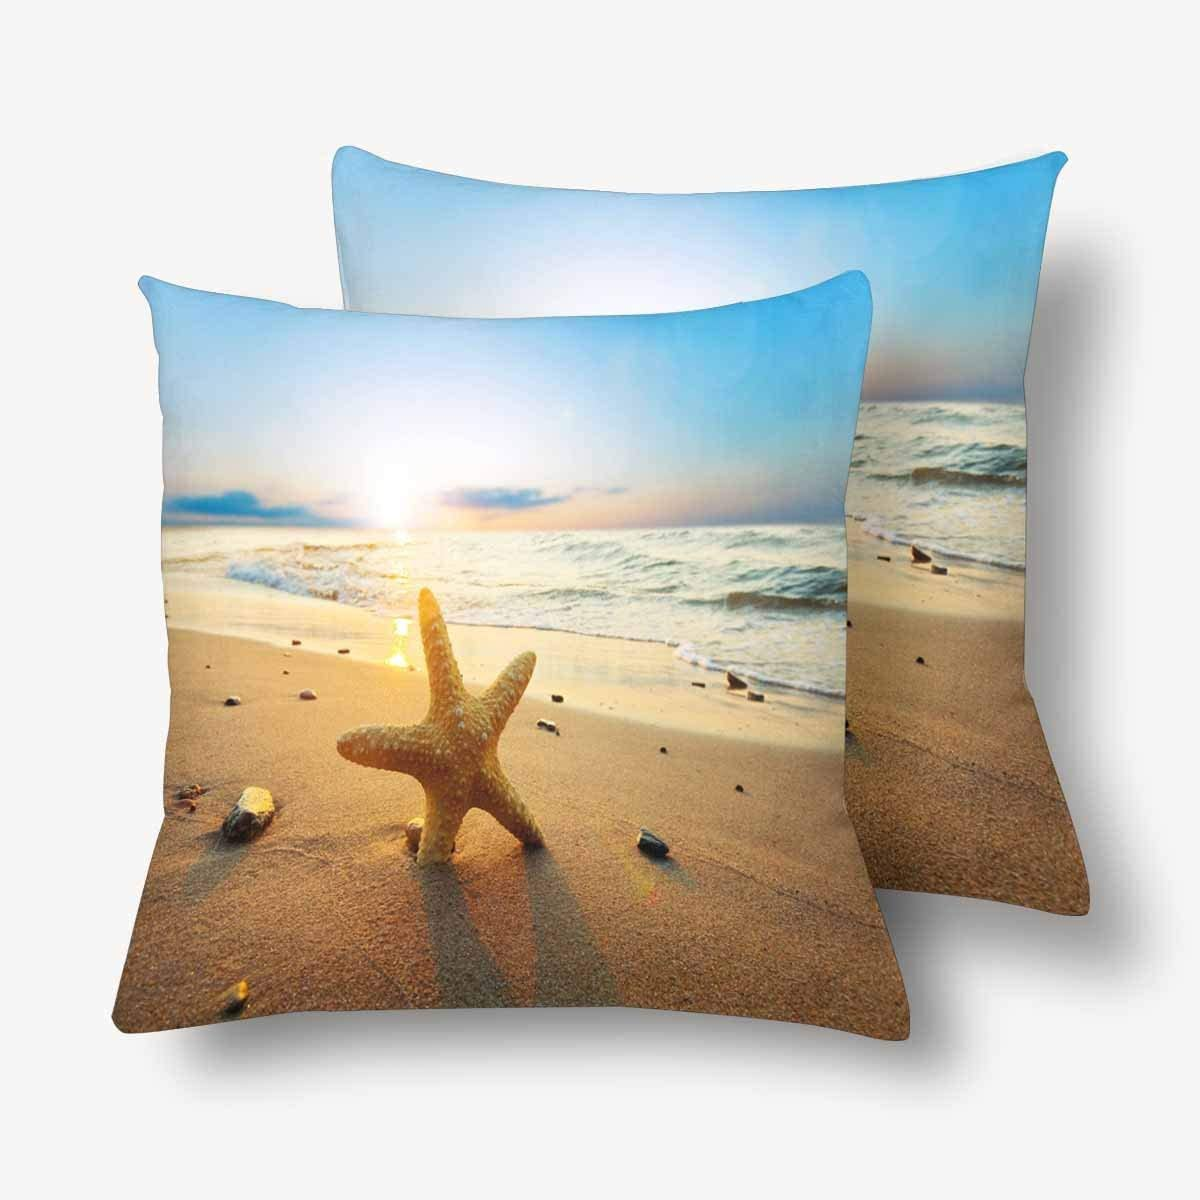 Amazon Com Gooesing Portrait Studio Ocean Starfish Beach Summer Time Nice Looking Pillow Case Pillow Cover 50 Cotton 50 Polyester Size 24x24 Inches Set Of 2 Home Kitchen